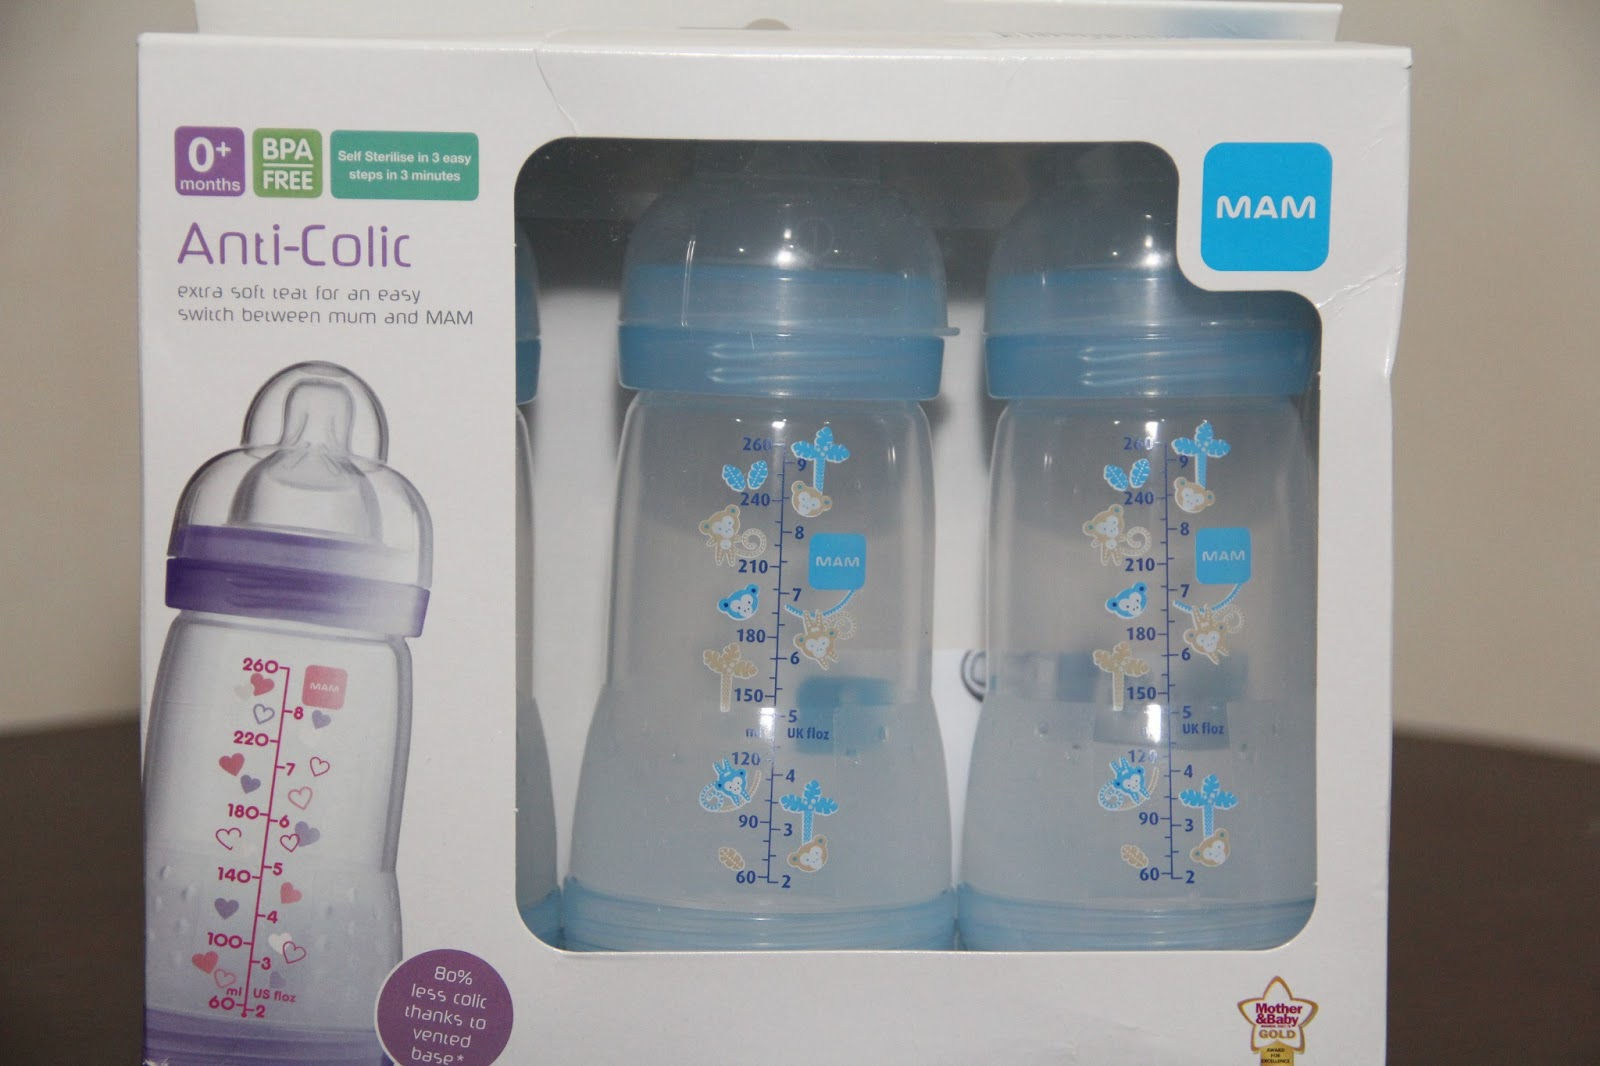 Cheap Uk Baby Amp Kids Items In Malaysia May 2013